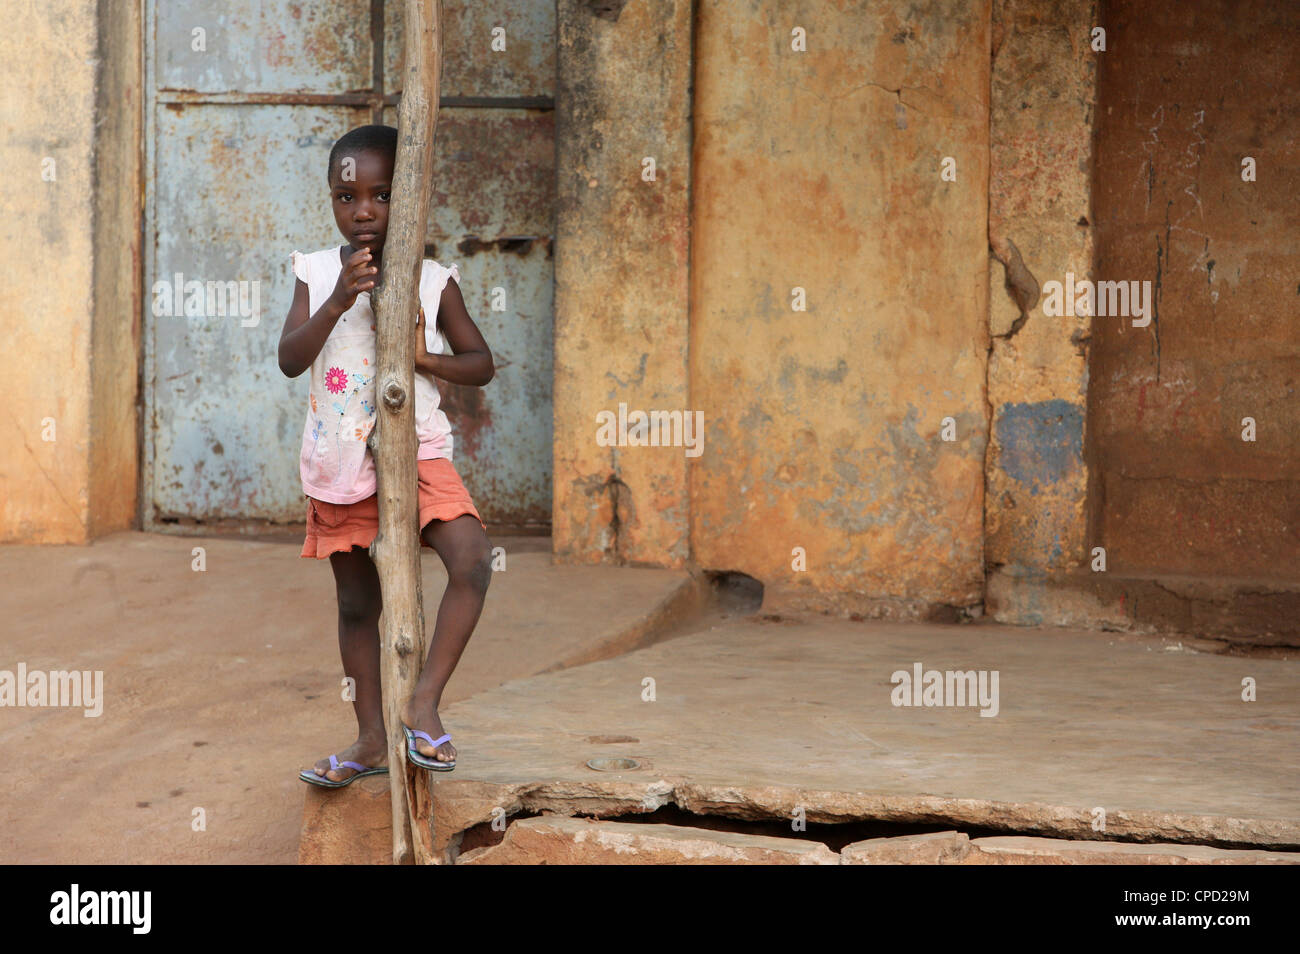 African girl, Lome, Togo, West Africa, Africa - Stock Image